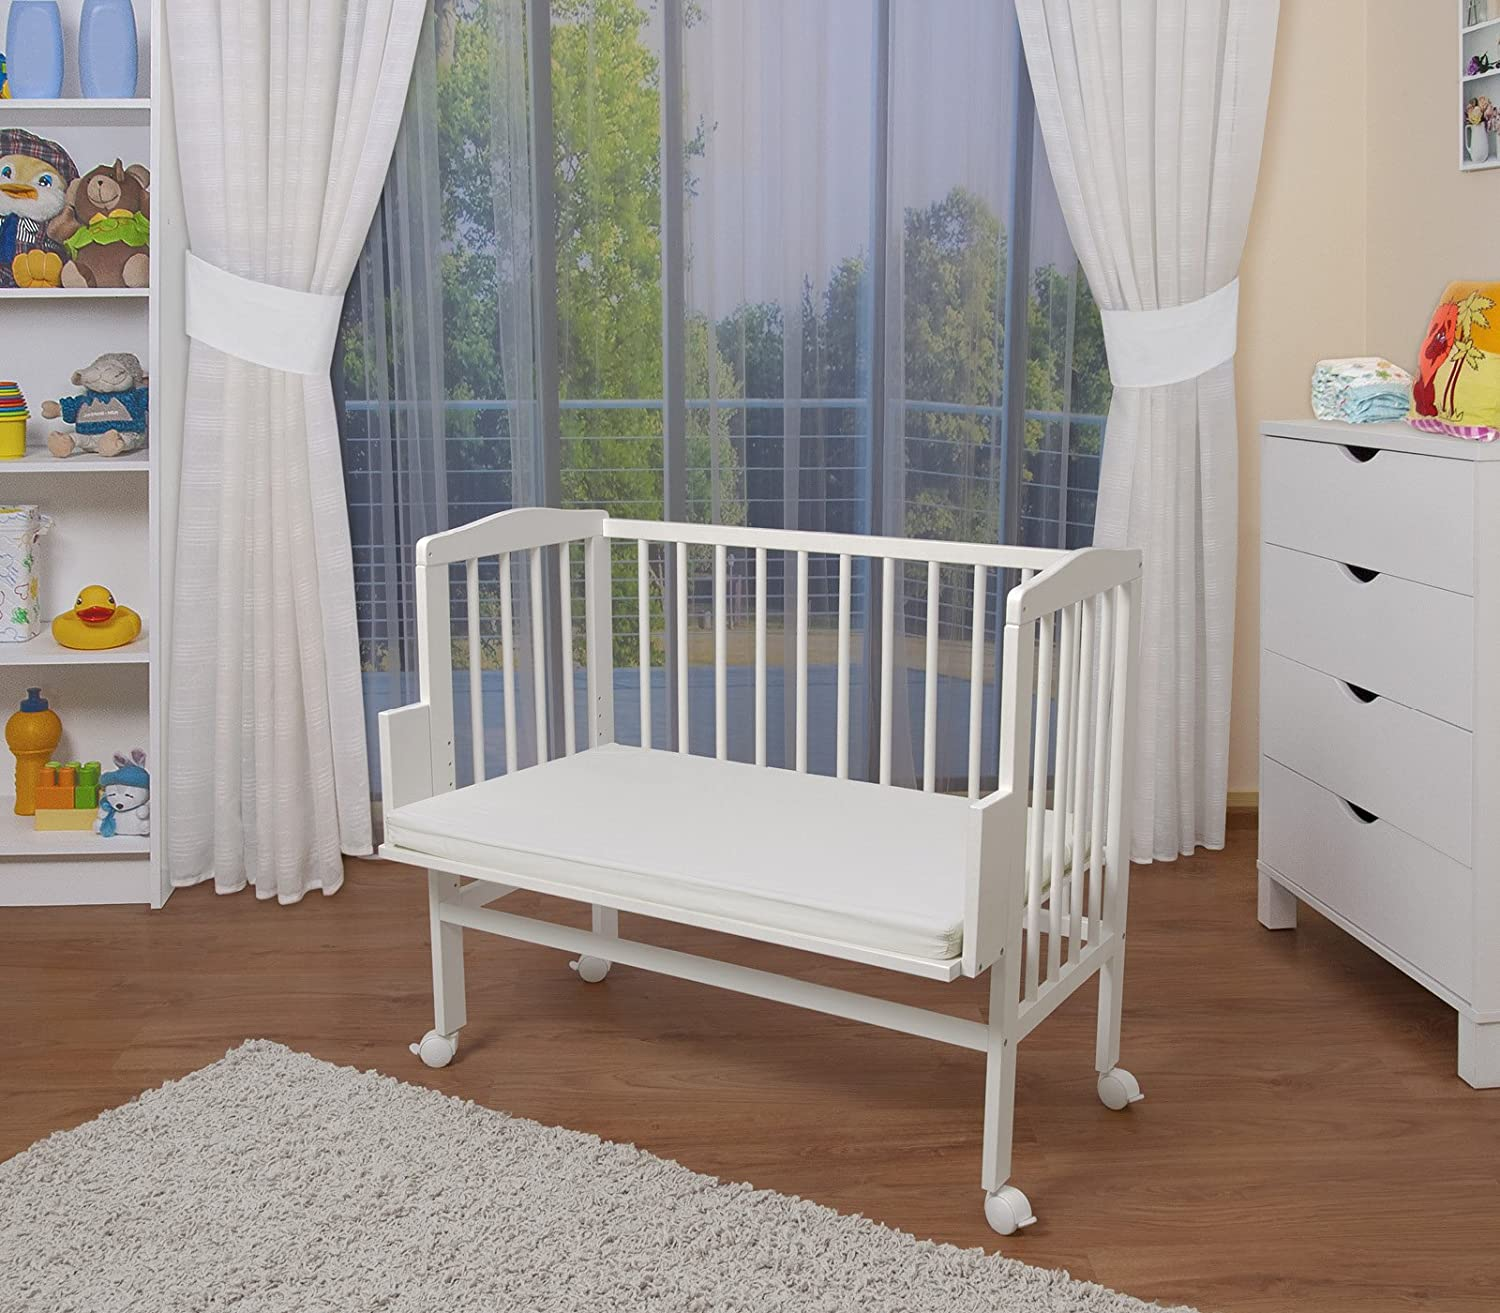 waldin baby bedside cot co sleeping height adjustable untreated